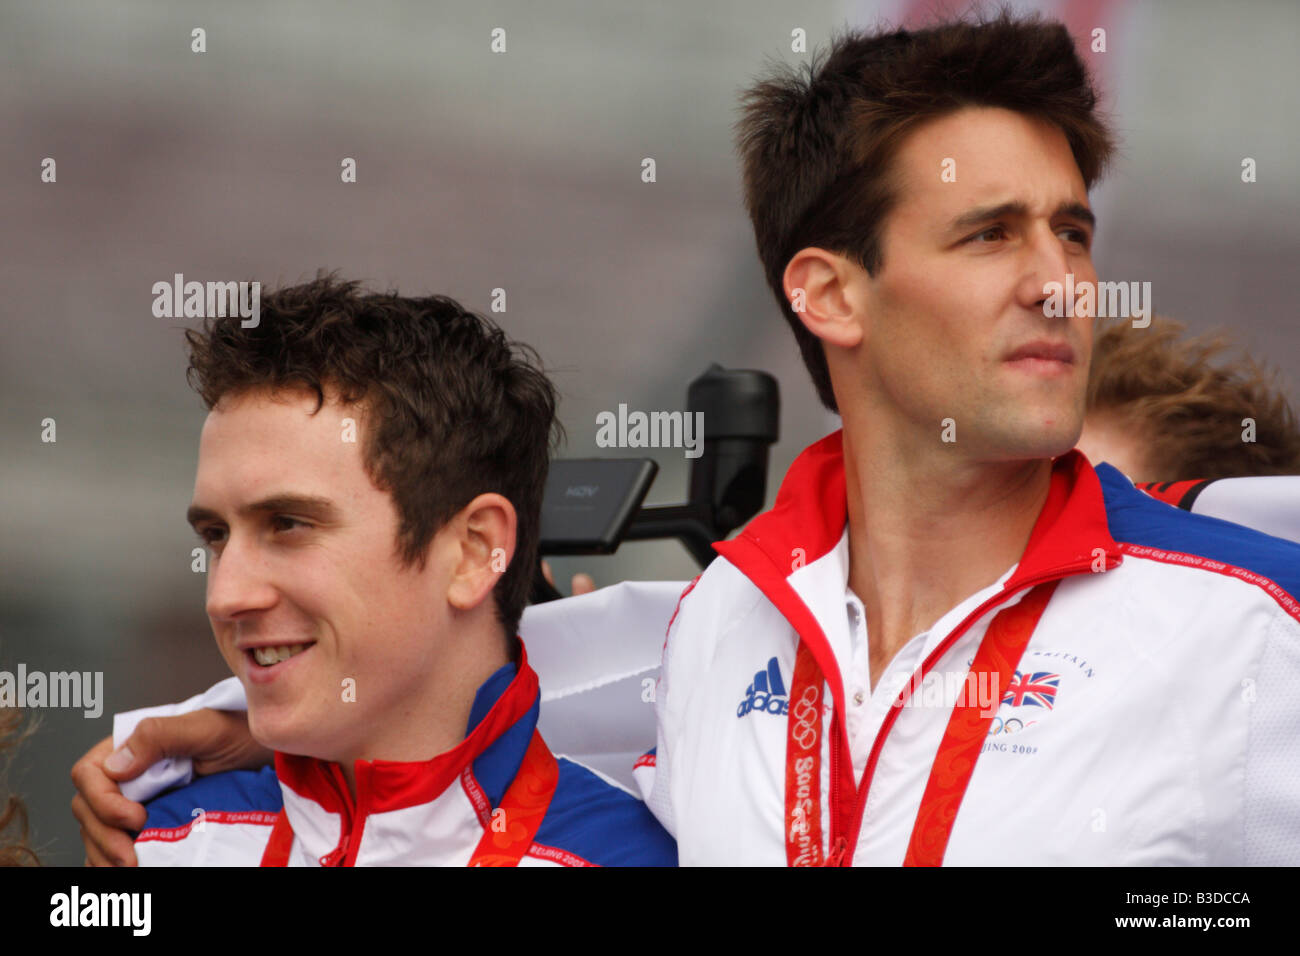 Geraint Thomas and Tom James, who both won gold medals at the 2008 Beijing Olympics, at a ceremony in Cardiff - Stock Image